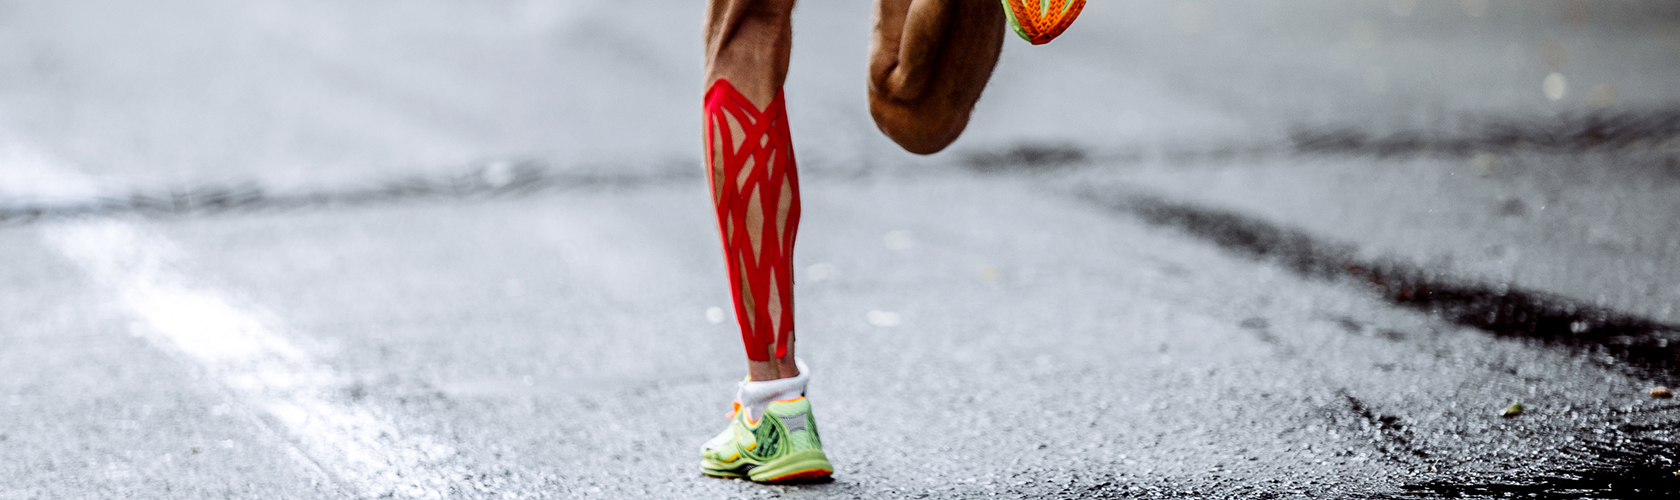 Running with kinesiology tape